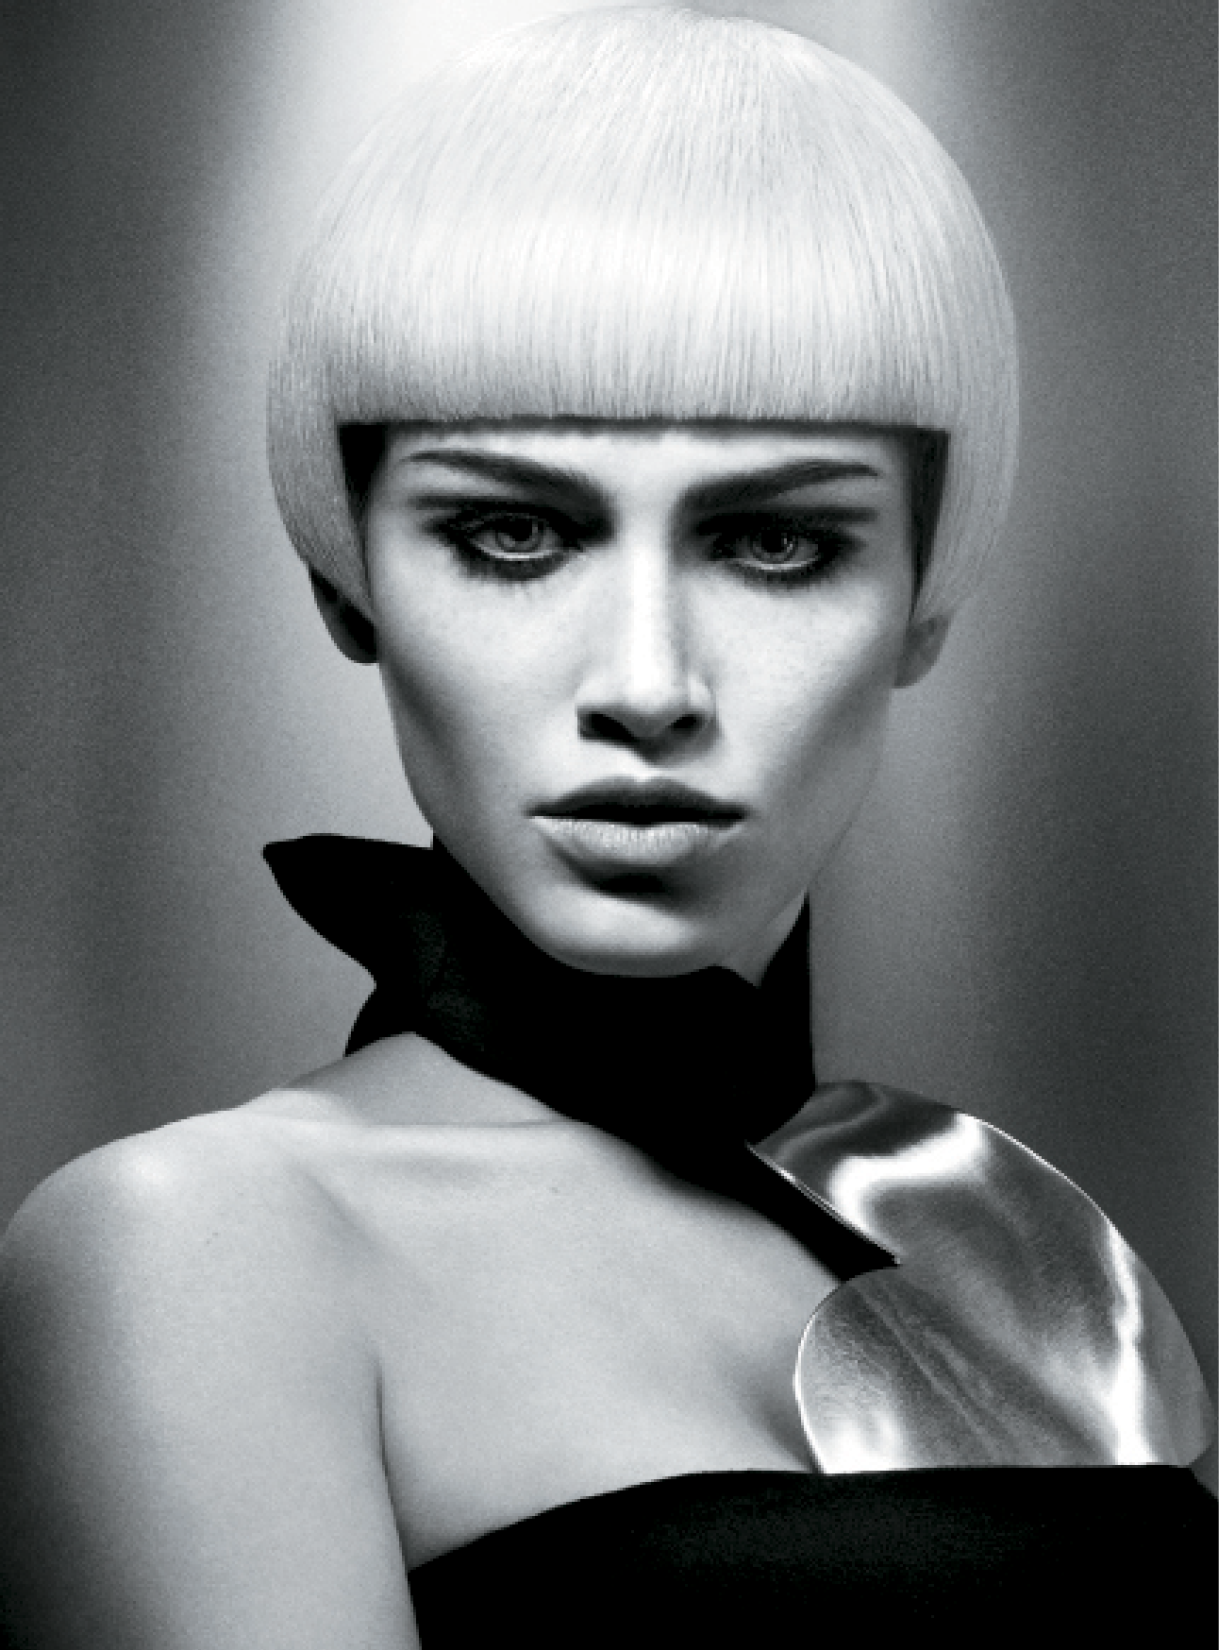 For this sleek bob, Leeson applied straightening balm and smoothing serum to damp hair before using a Denman flat-iron to wrap dry and smooth the hair. Using a Denman brush, he blow-dried the hair to keep the cuticles smooth. For a sleek finish, he used heat protection spray and straightening irons to smooth strands and the fringe.